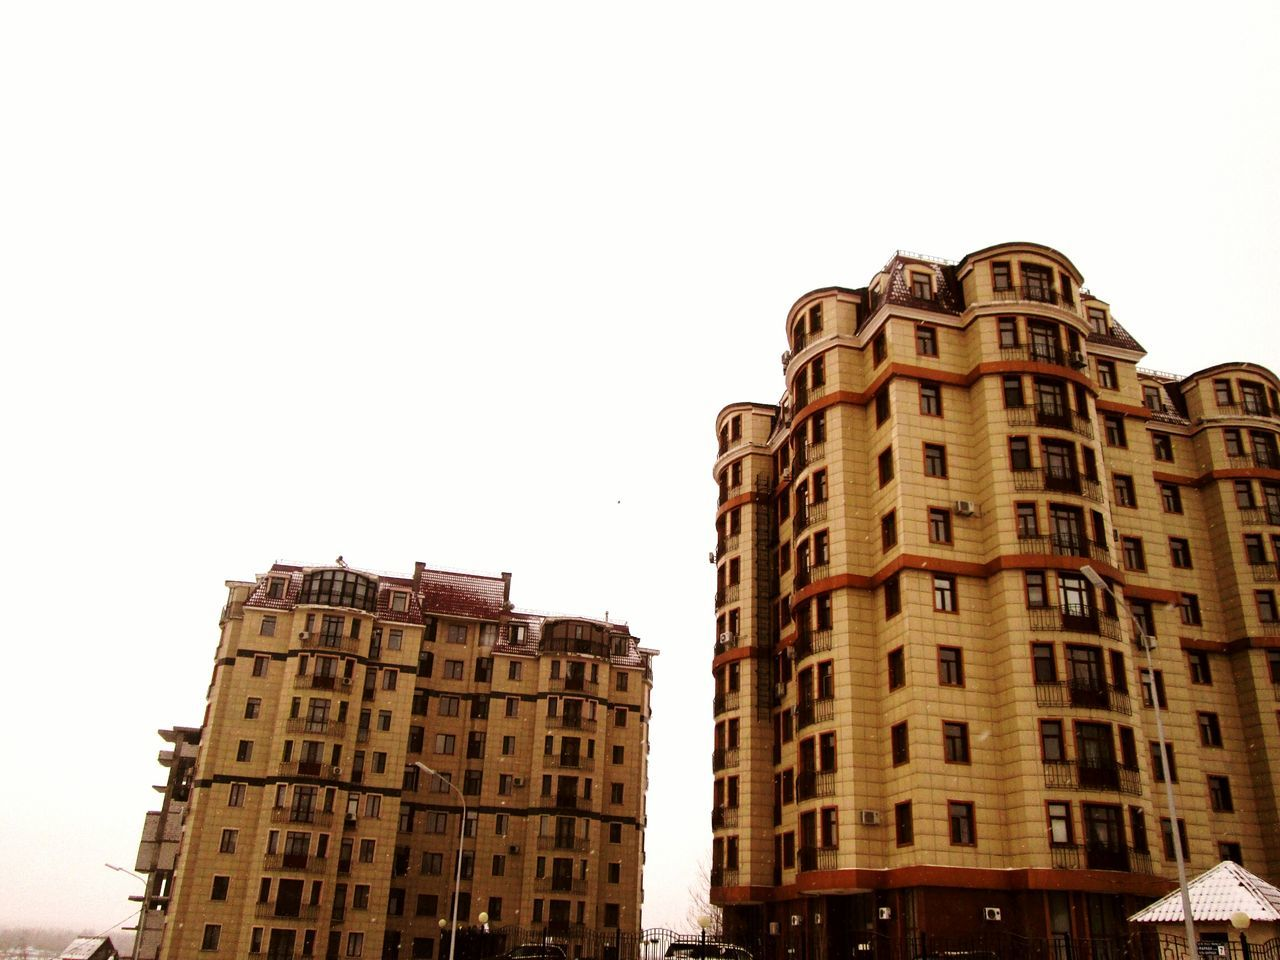 City Building Exterior Architecture Sky No People Urban Skyline Day Bigbuildings Houses Houses And Windows Citybuildings